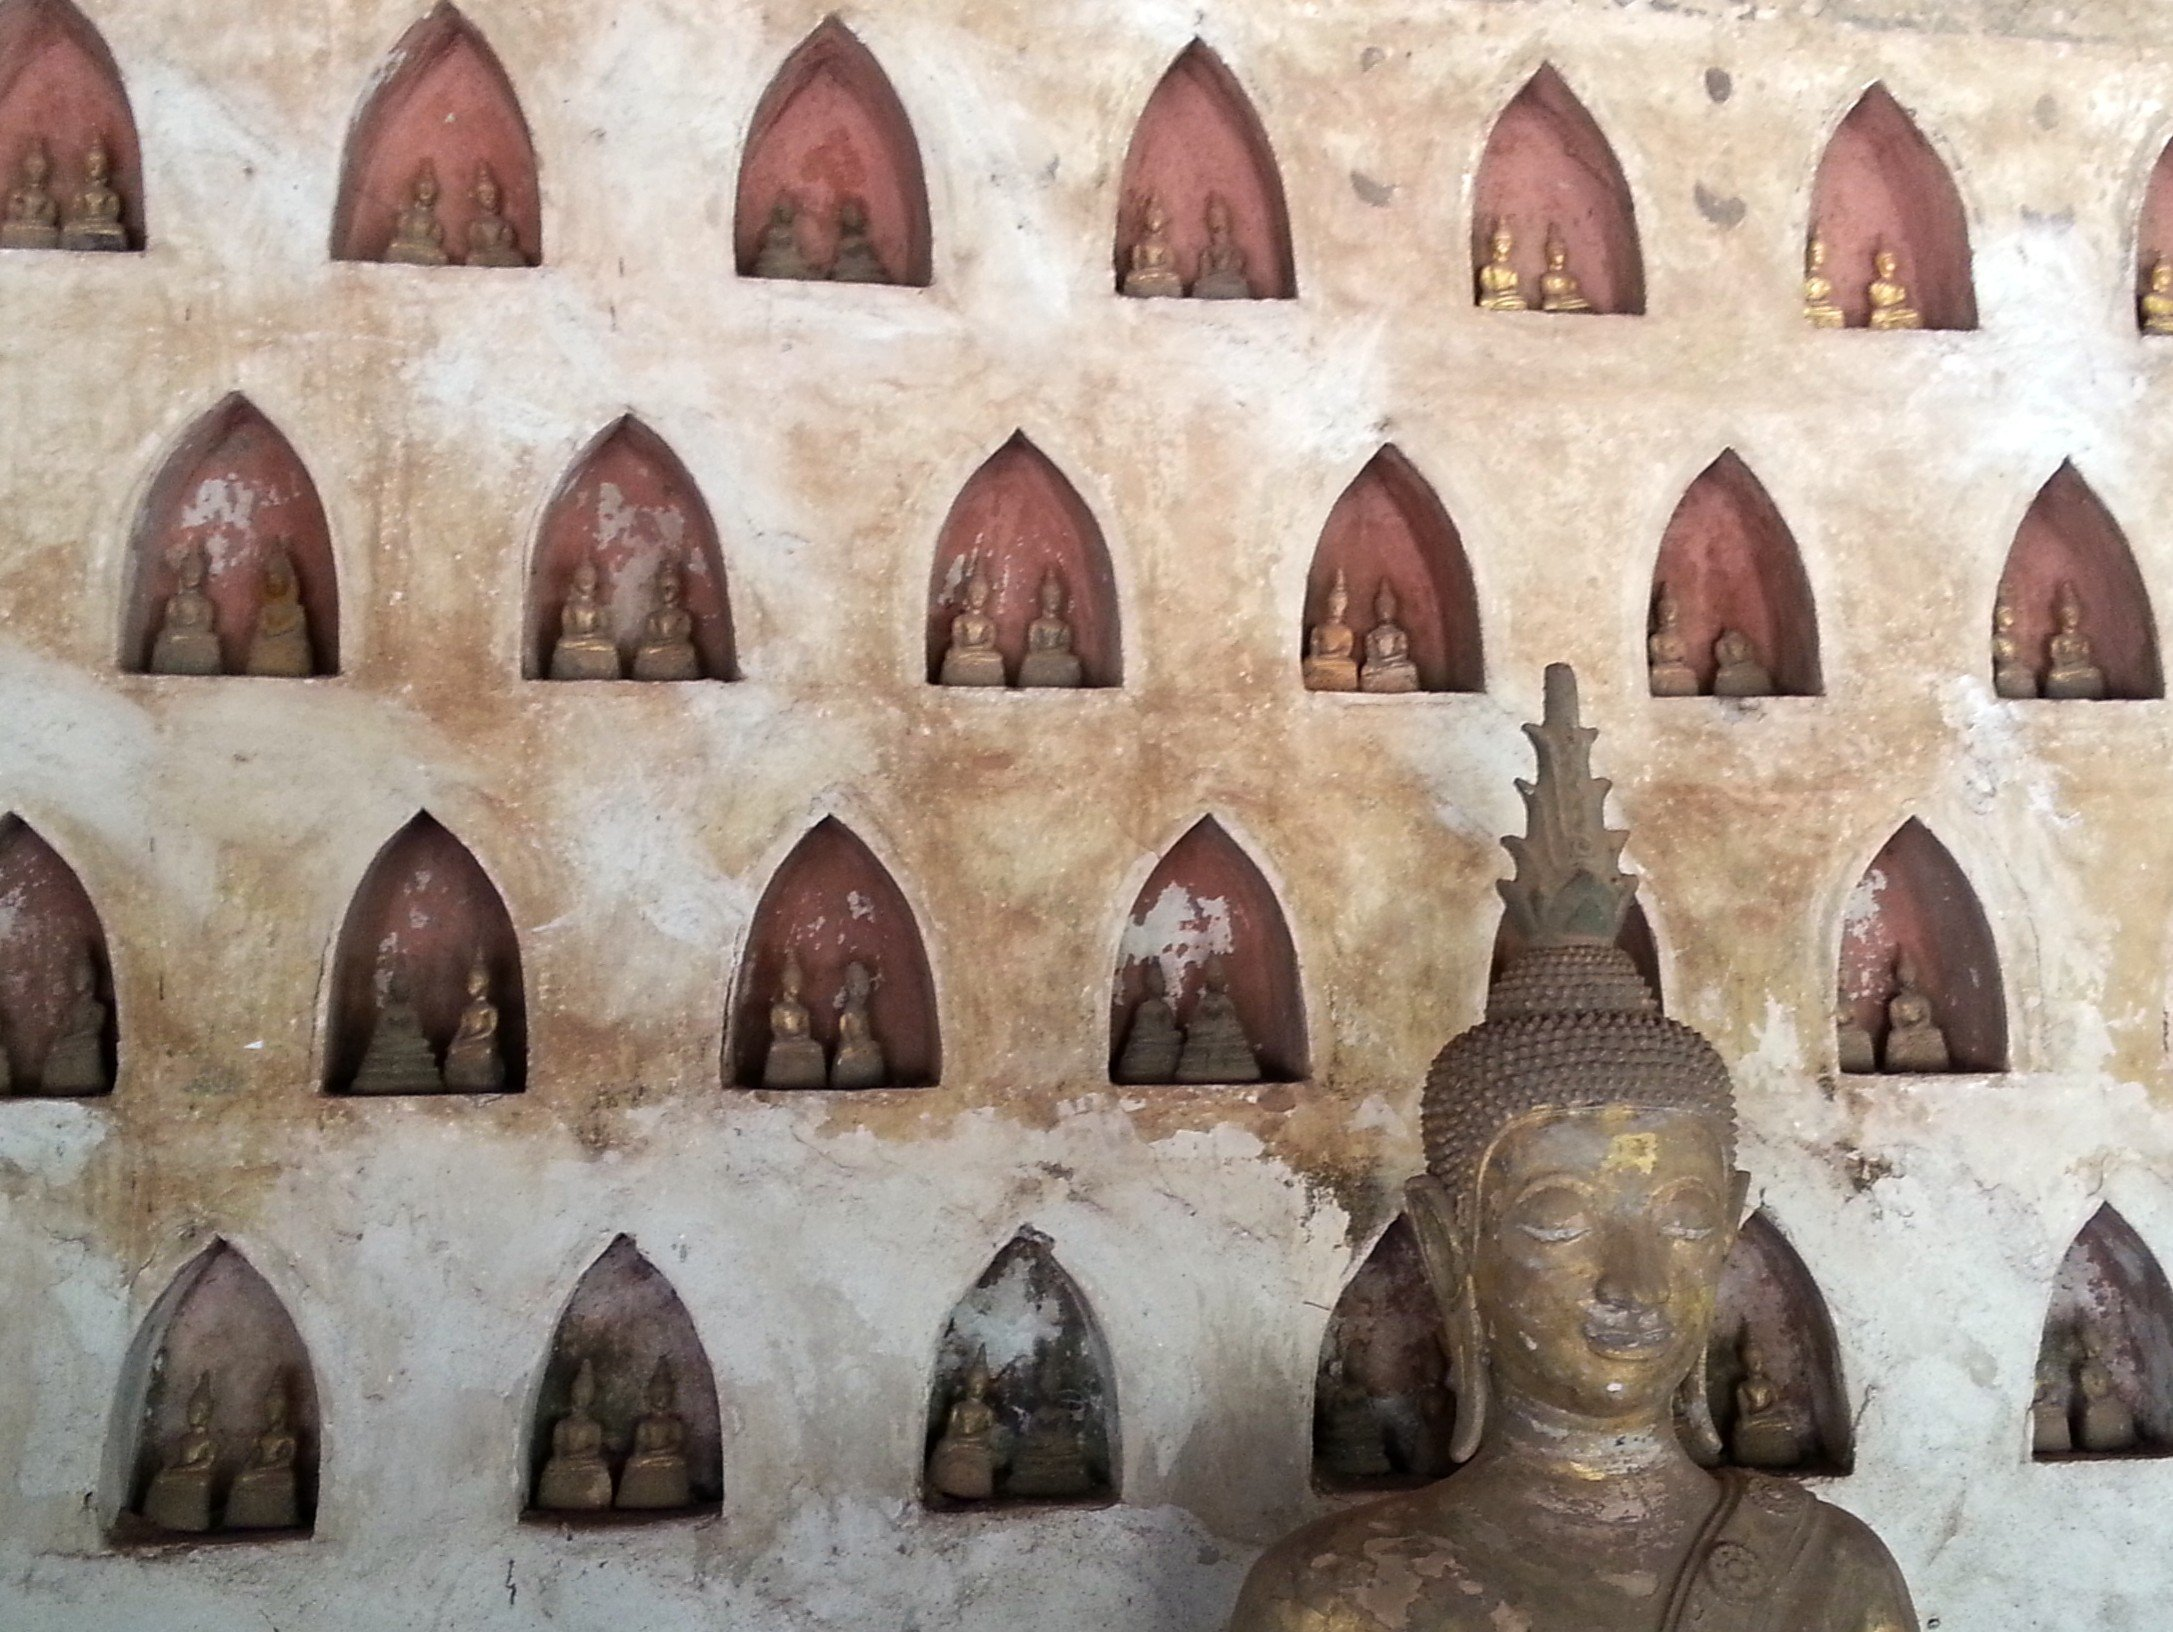 Buddha statues in niches at Wat Si Sa Ket